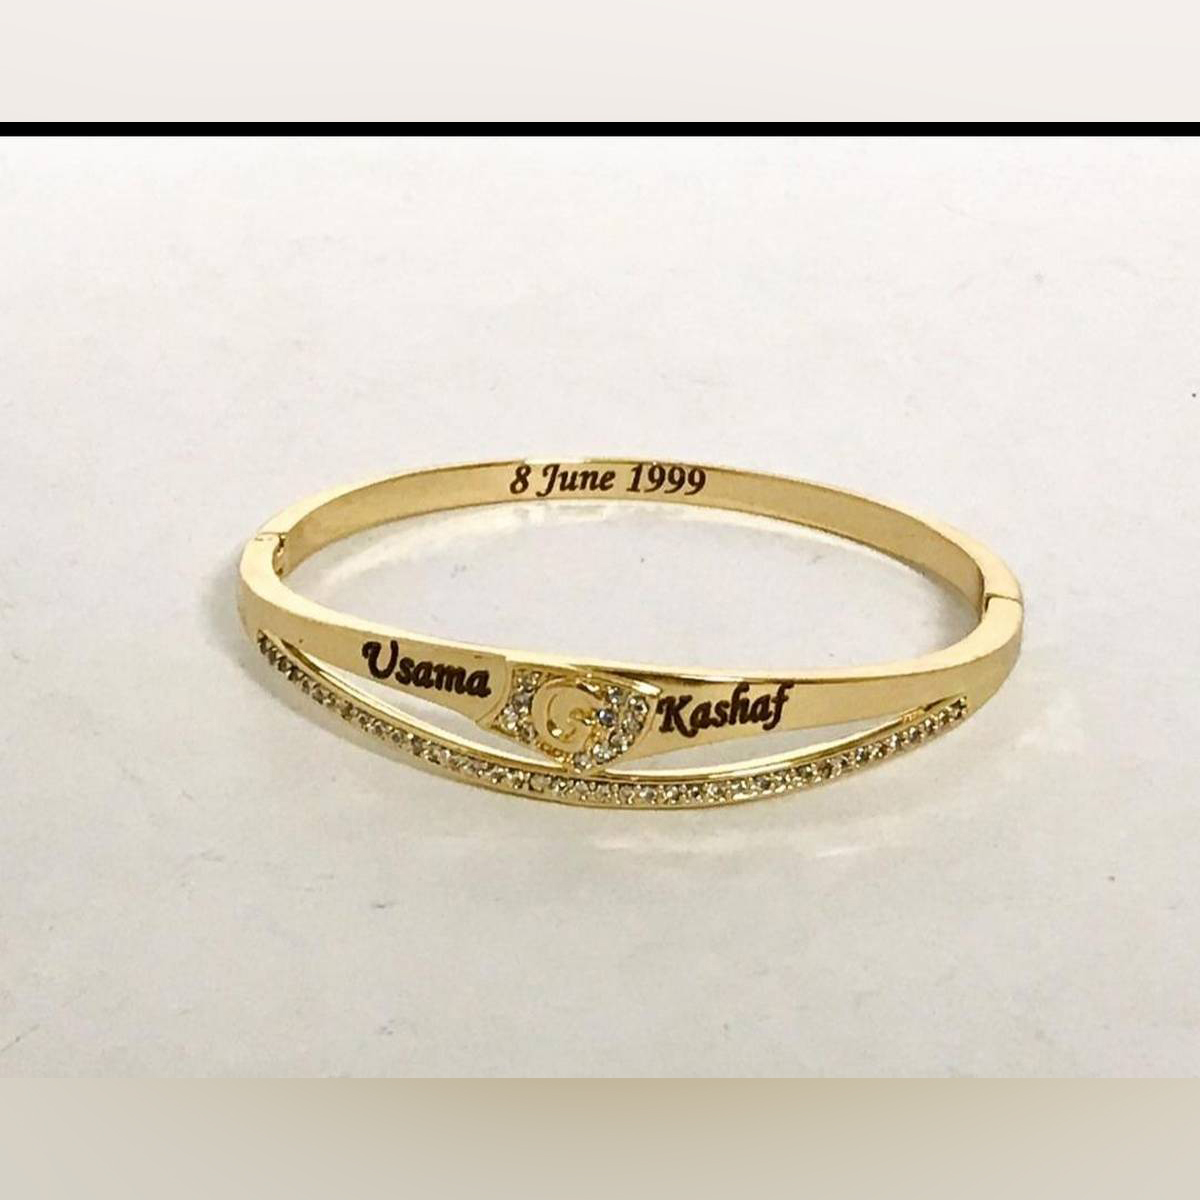 PLACE ORDER AND MENTION NAMES & DATE IN CHAT  Name Bracelet or Bangle With Engraved Names & Date for Men/Women  -Best for Gift -For Loved Ones -Birthday Gift -Anniversary Gift -Engagement Gift - 02 Names & Date Engraving -Customized Gift